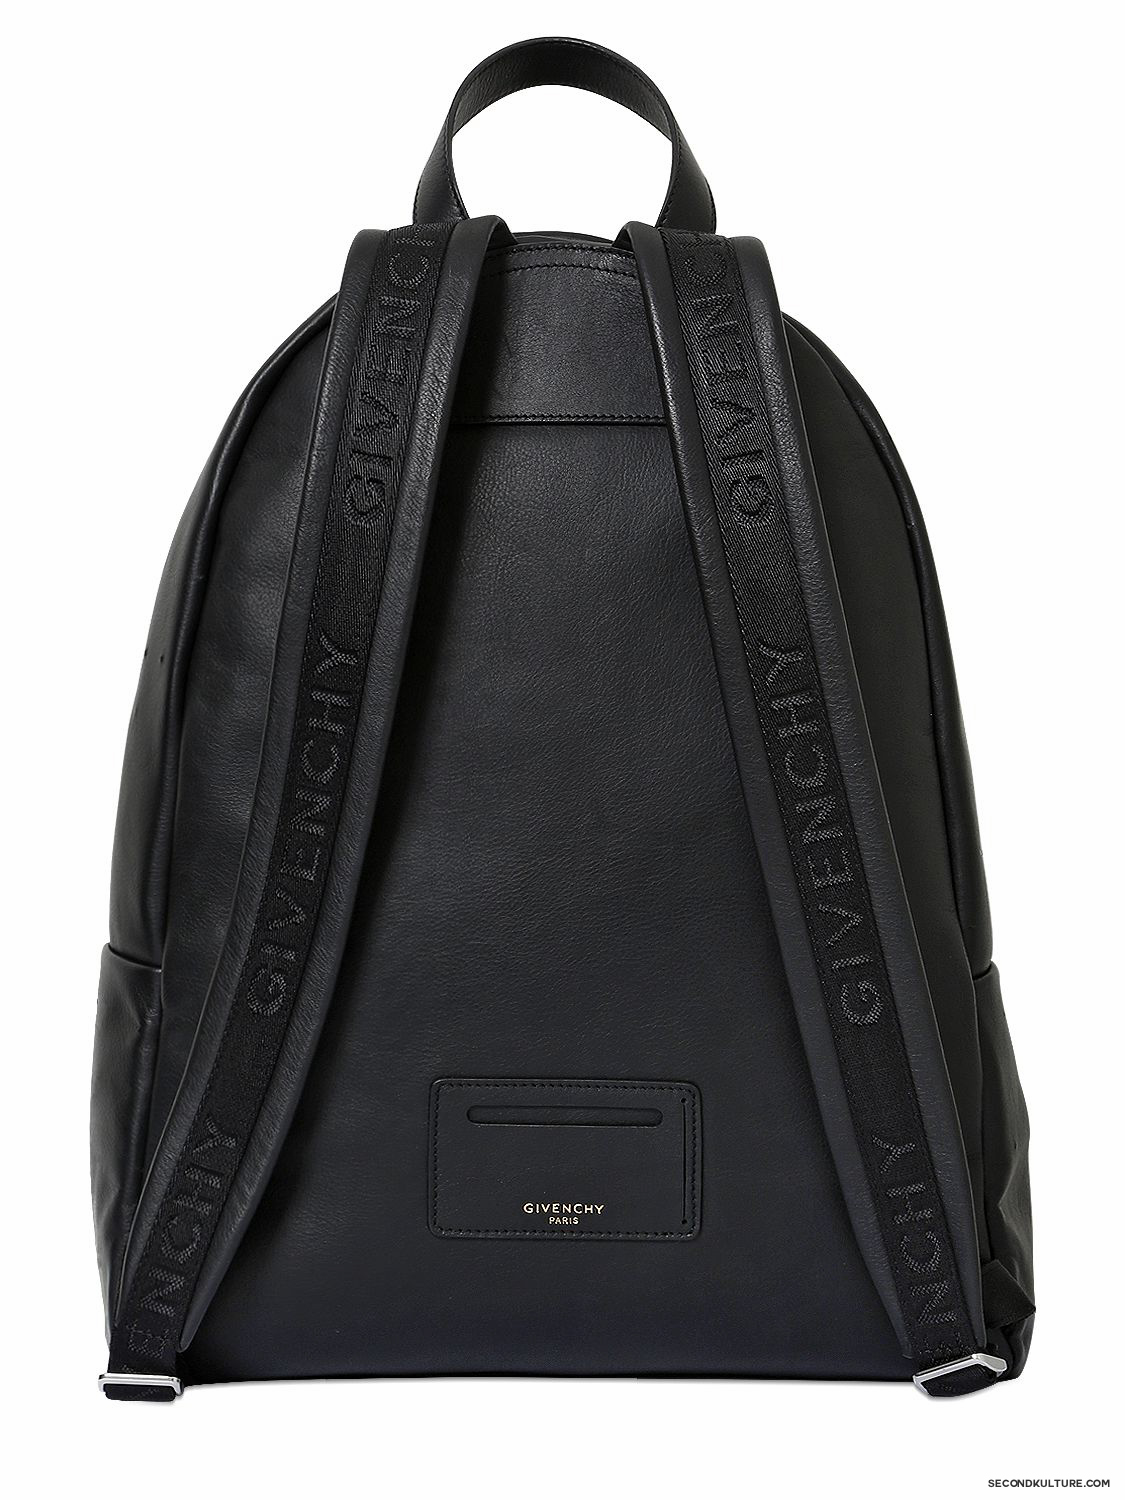 Givenchy-Black-Destroyed-Leather-Backpack-Fall-Winter-2015-2